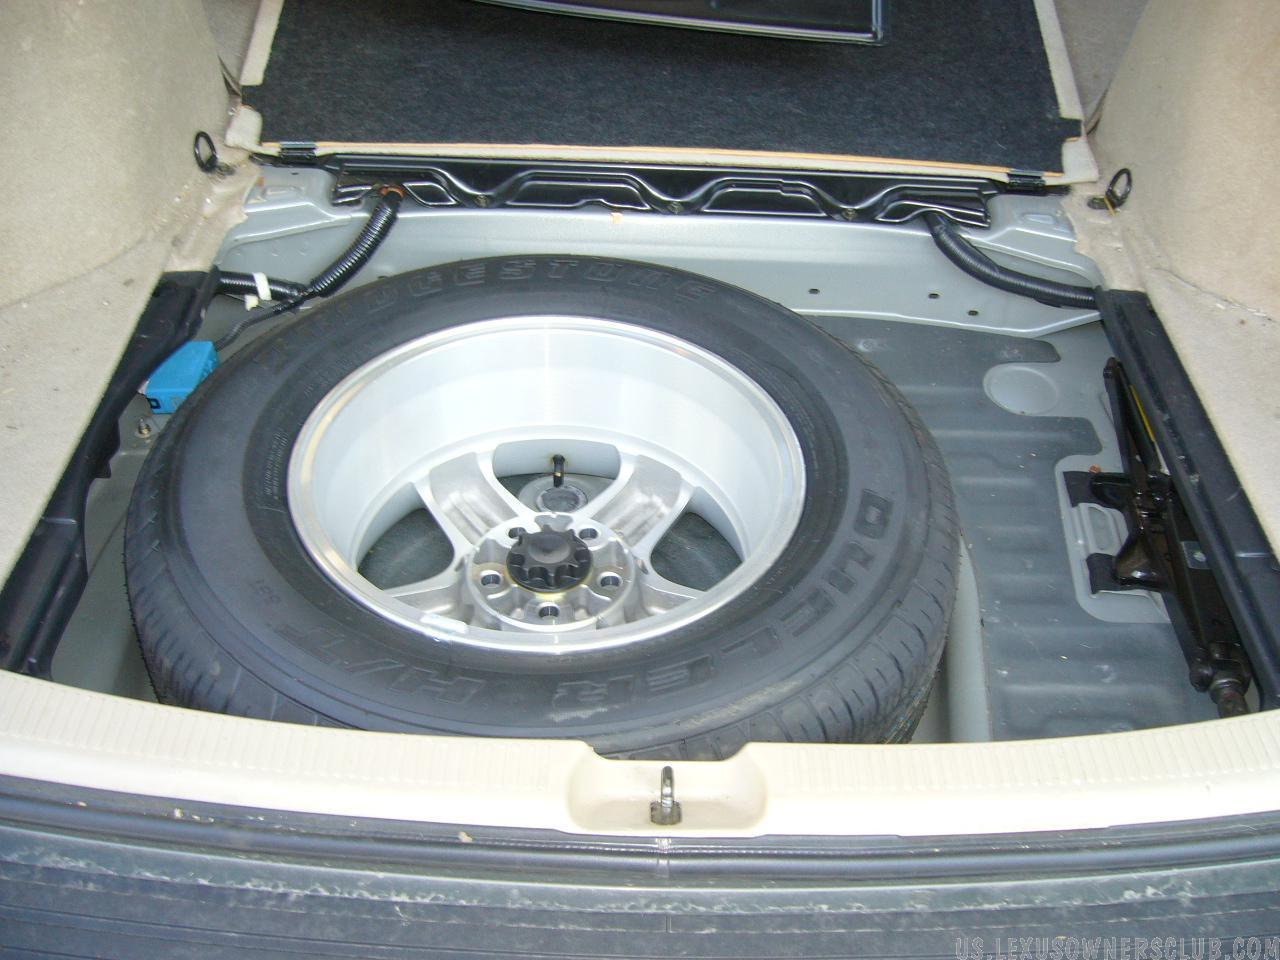 Rear Tire/Storage compartment